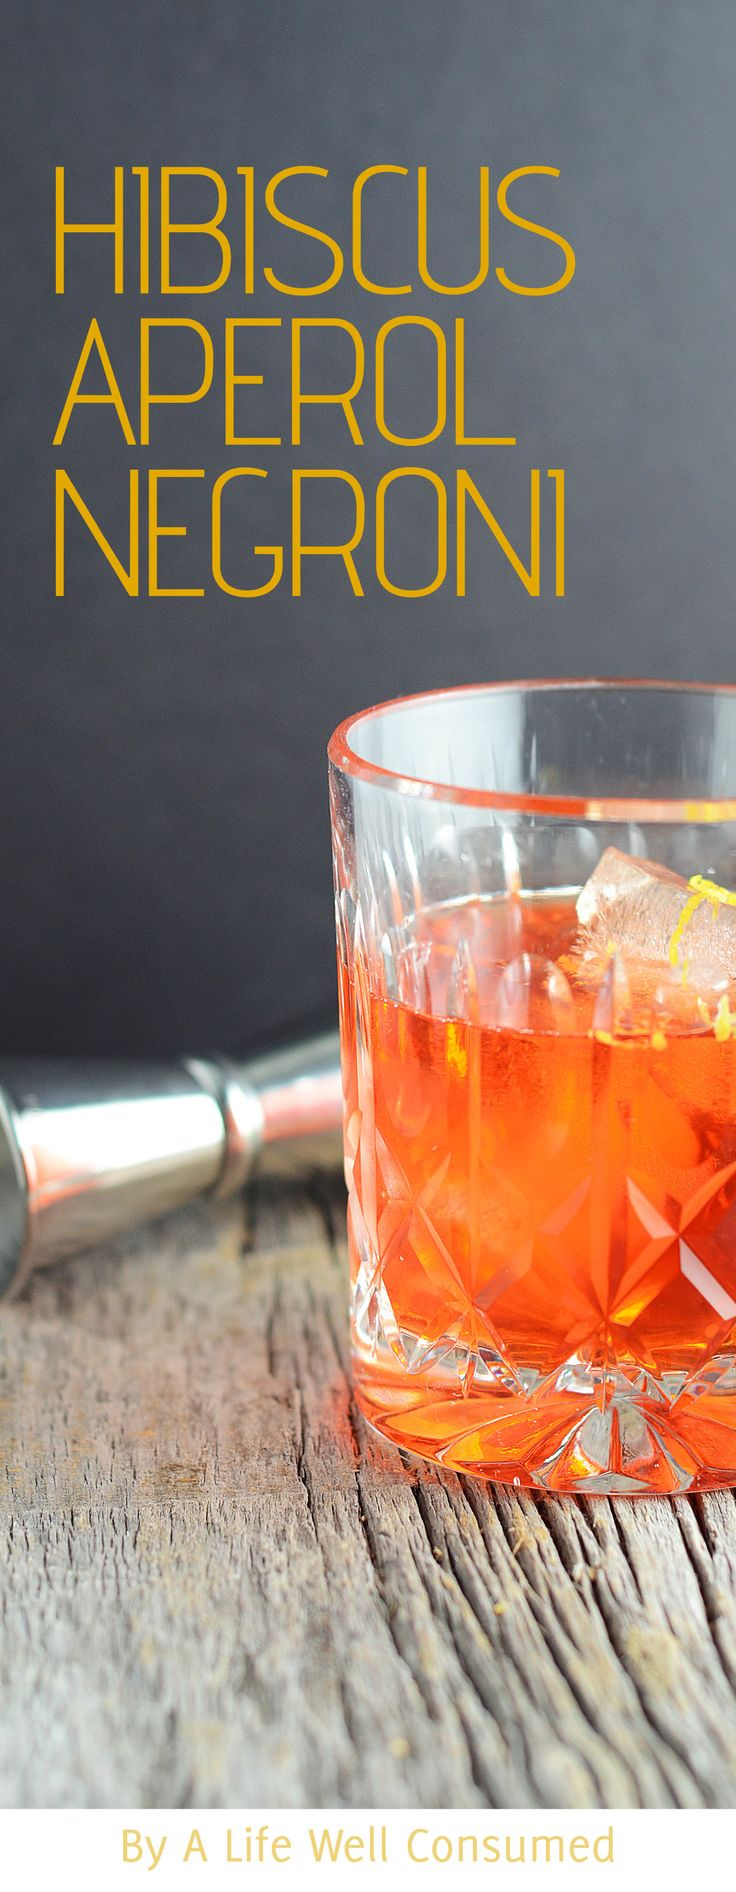 A twist on the classic, this Hibiscus Aperol Negroni is a delicious bitter drink. The floral hint from the hibiscus gives an it more depth.